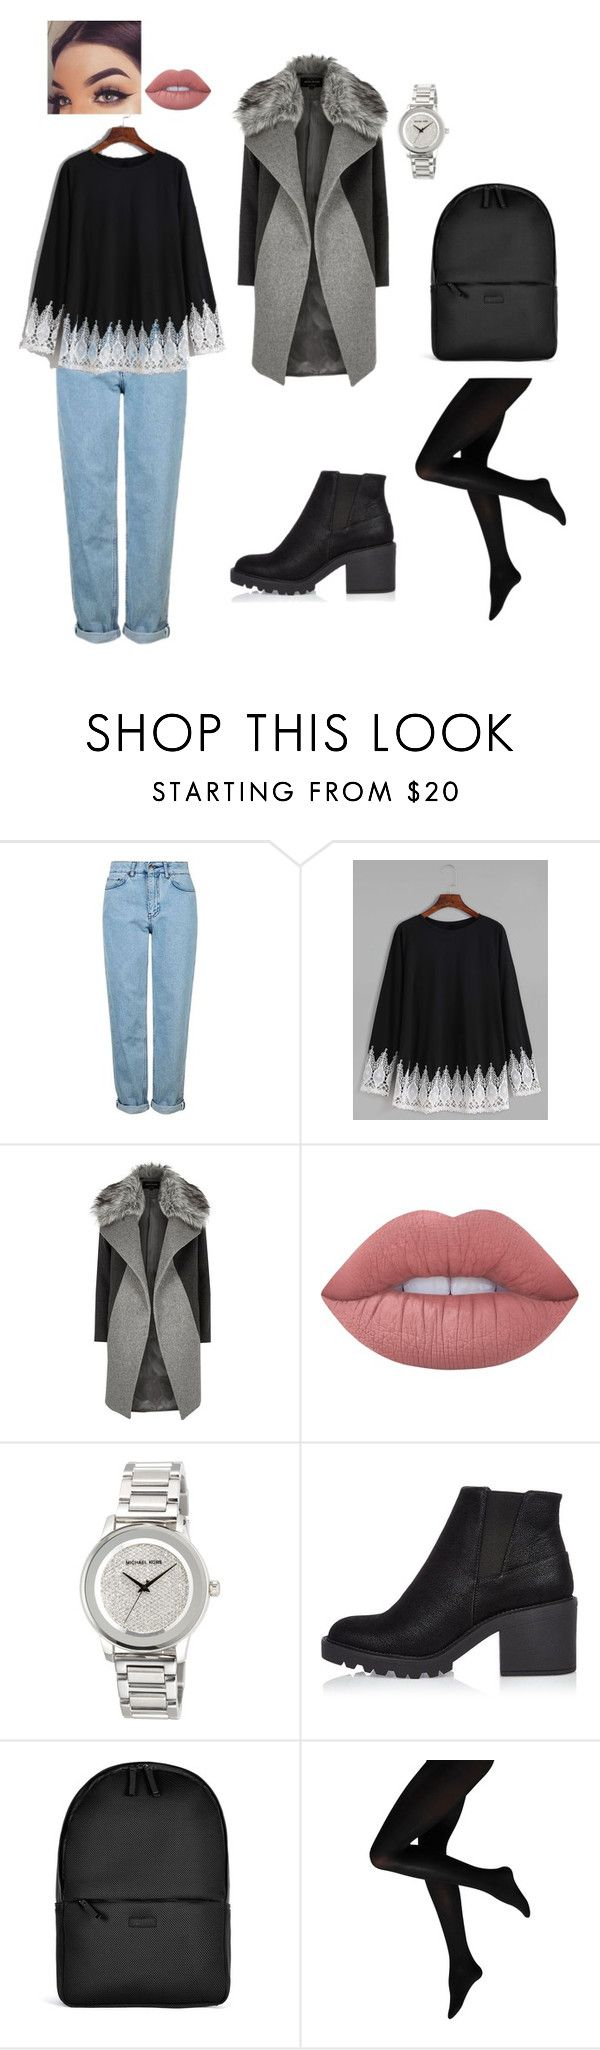 """winter"" by emaabdi on Polyvore featuring Topshop, River Island, Lime Crime, MICHAEL Michael Kors and Rains"